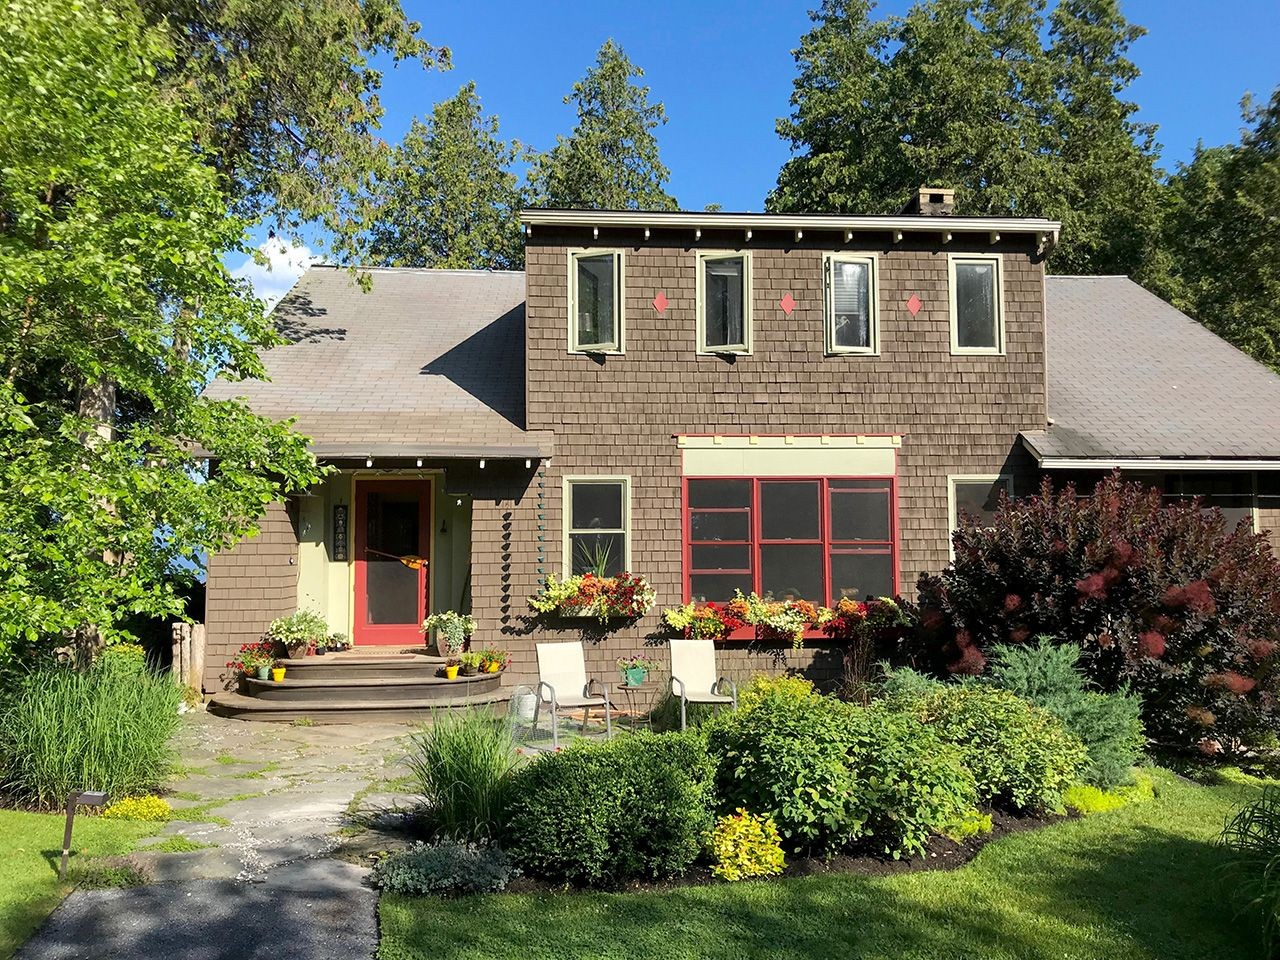 ordway shore road a luxury single family home for sale in shelburne, vermont property id 399087932 christie s international real estate